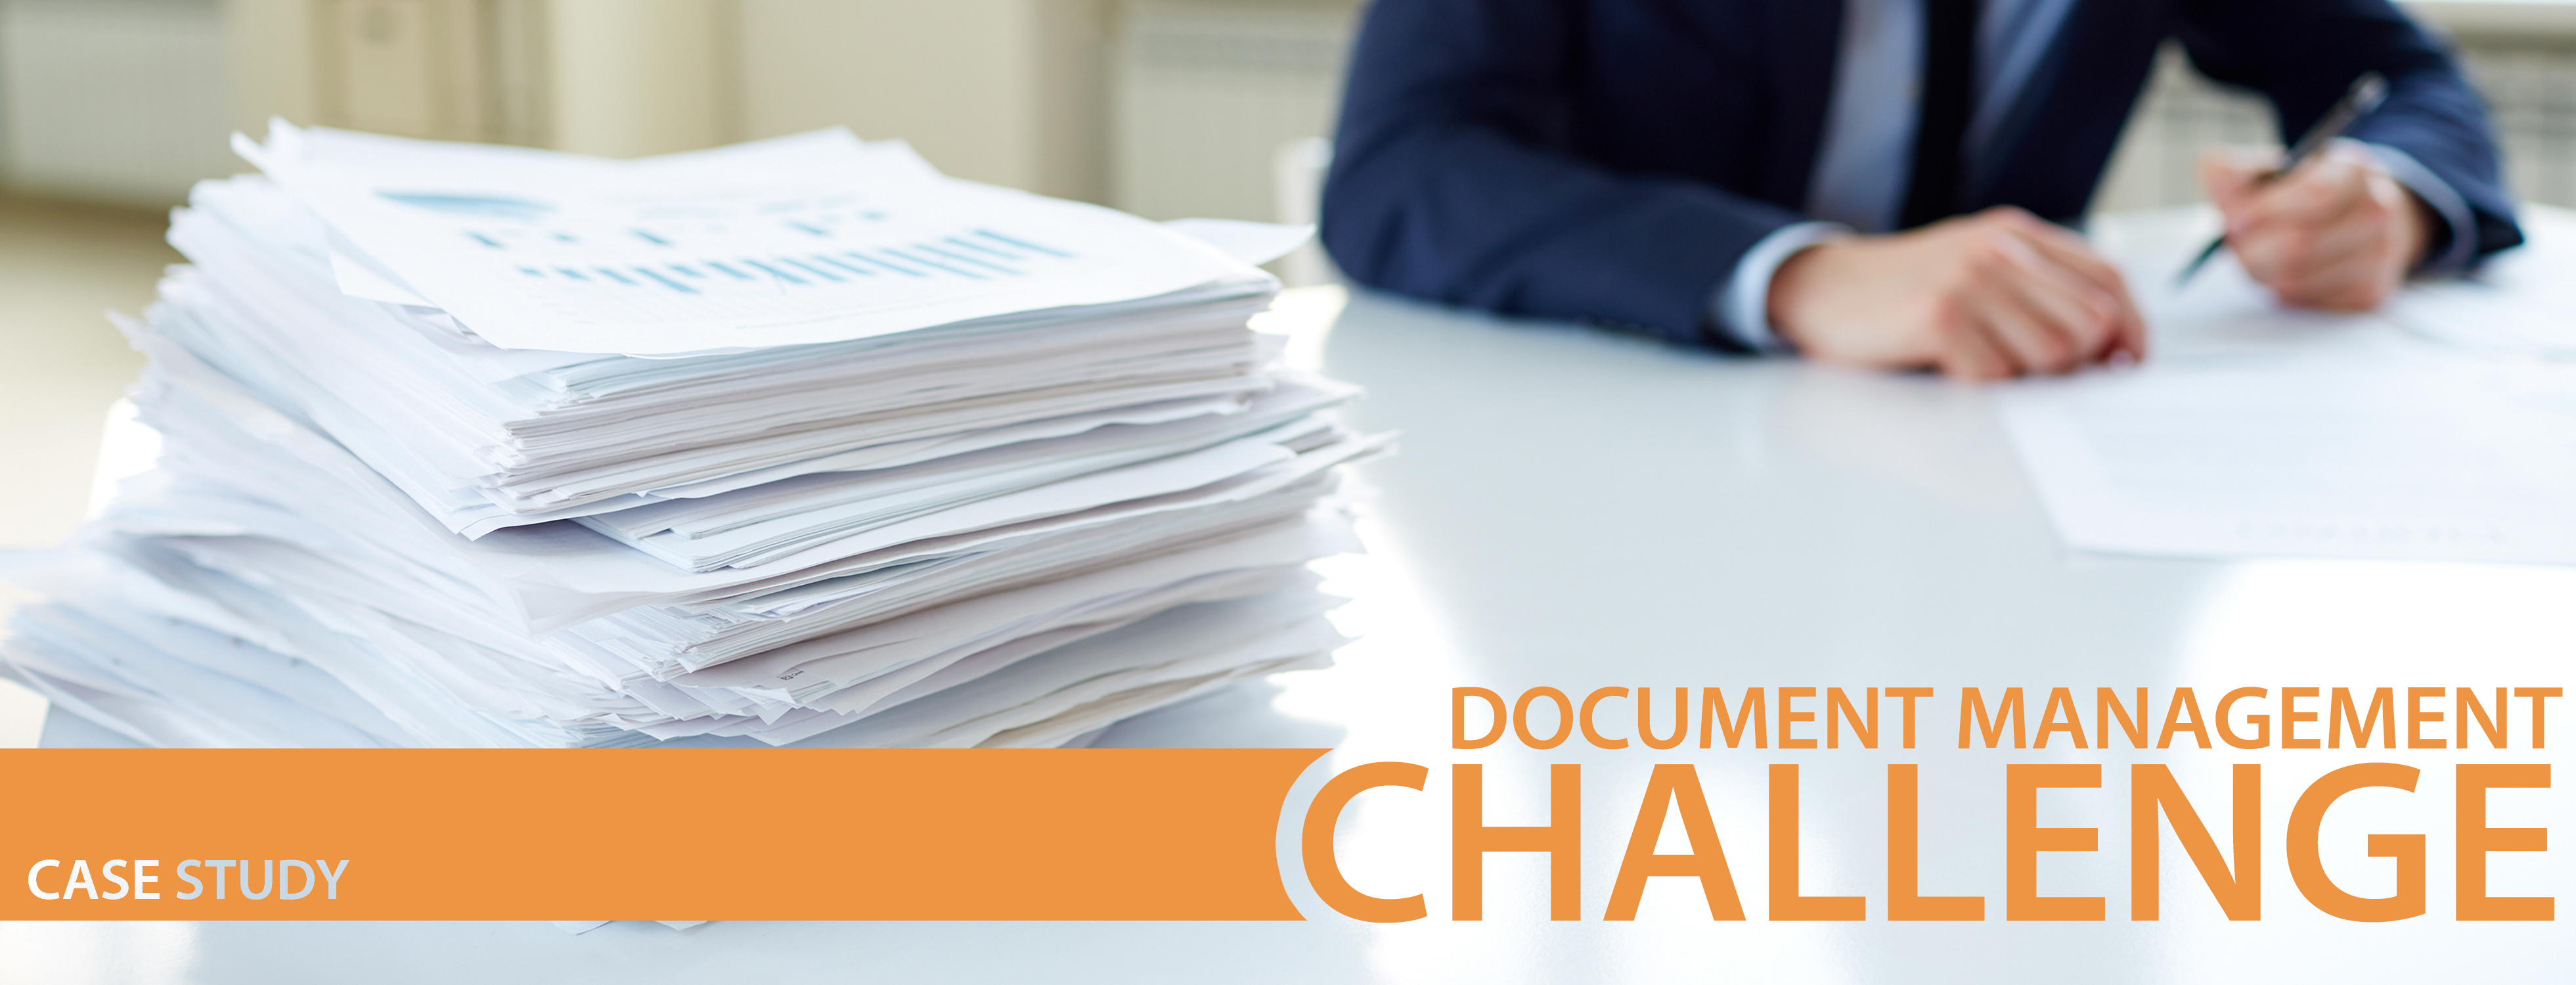 document management challenge case study header